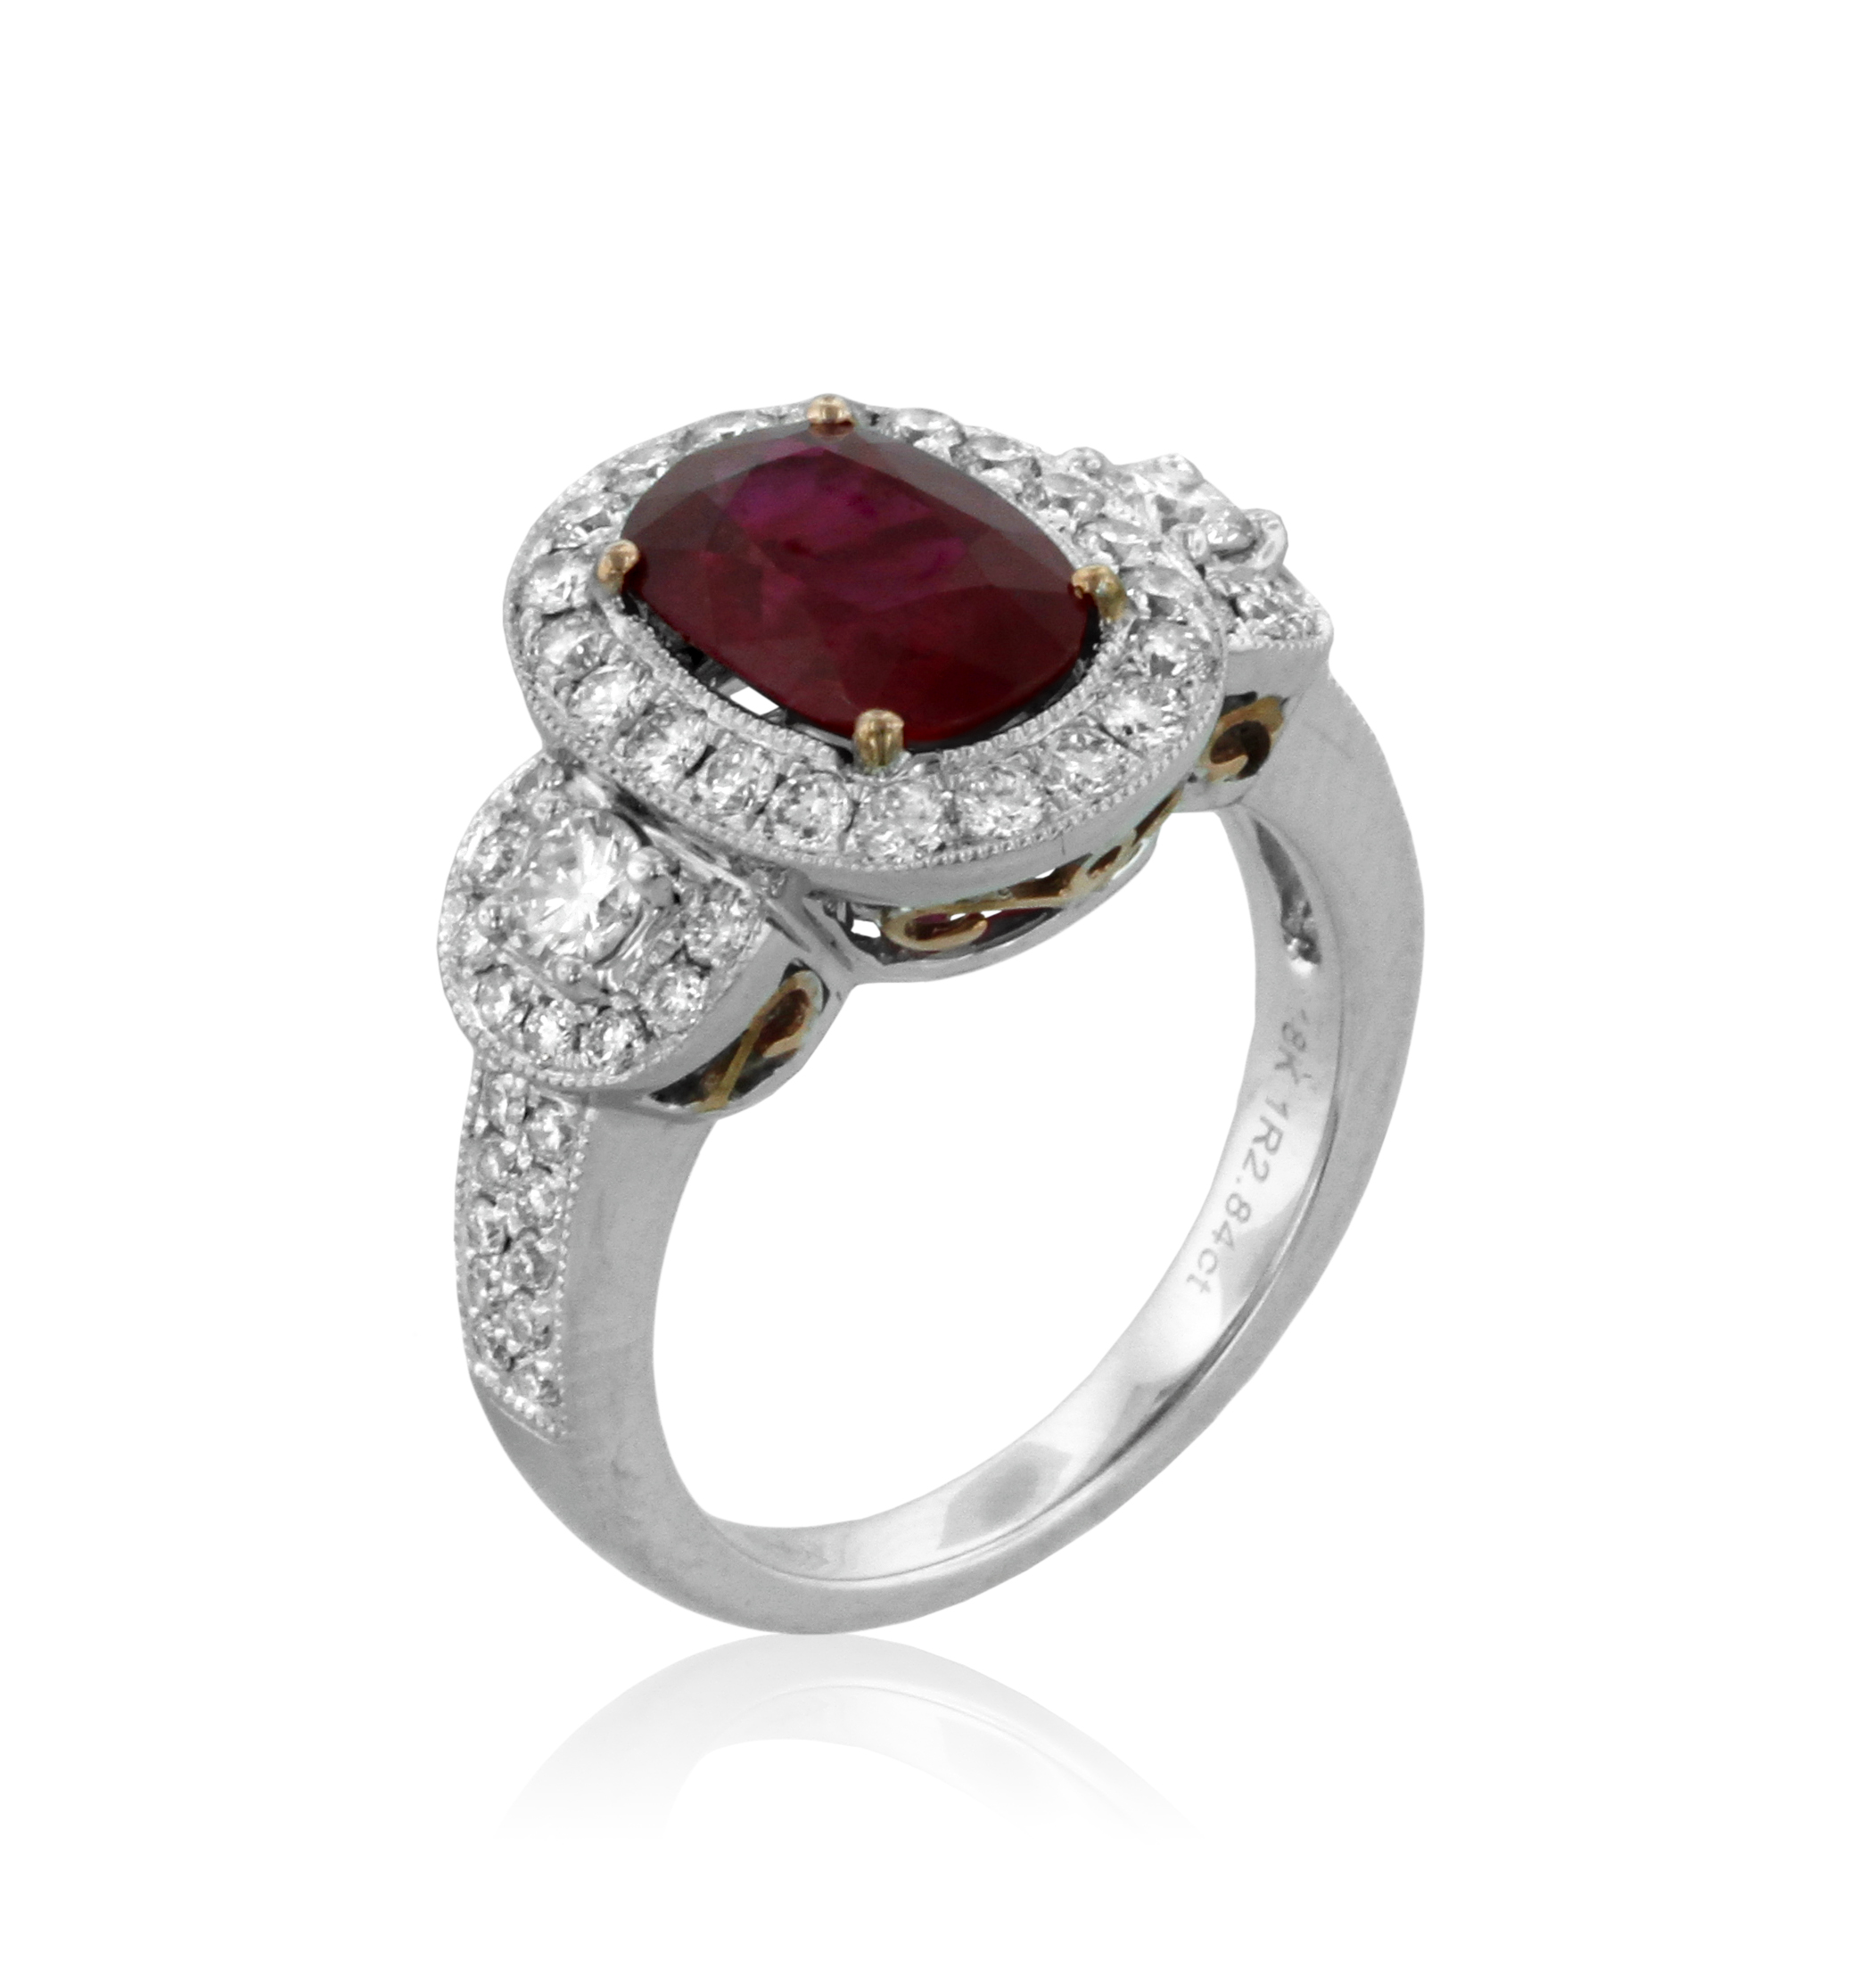 jerezwine ring rose engagement halo diamond red and rings gold cut ruby pear k jewelry